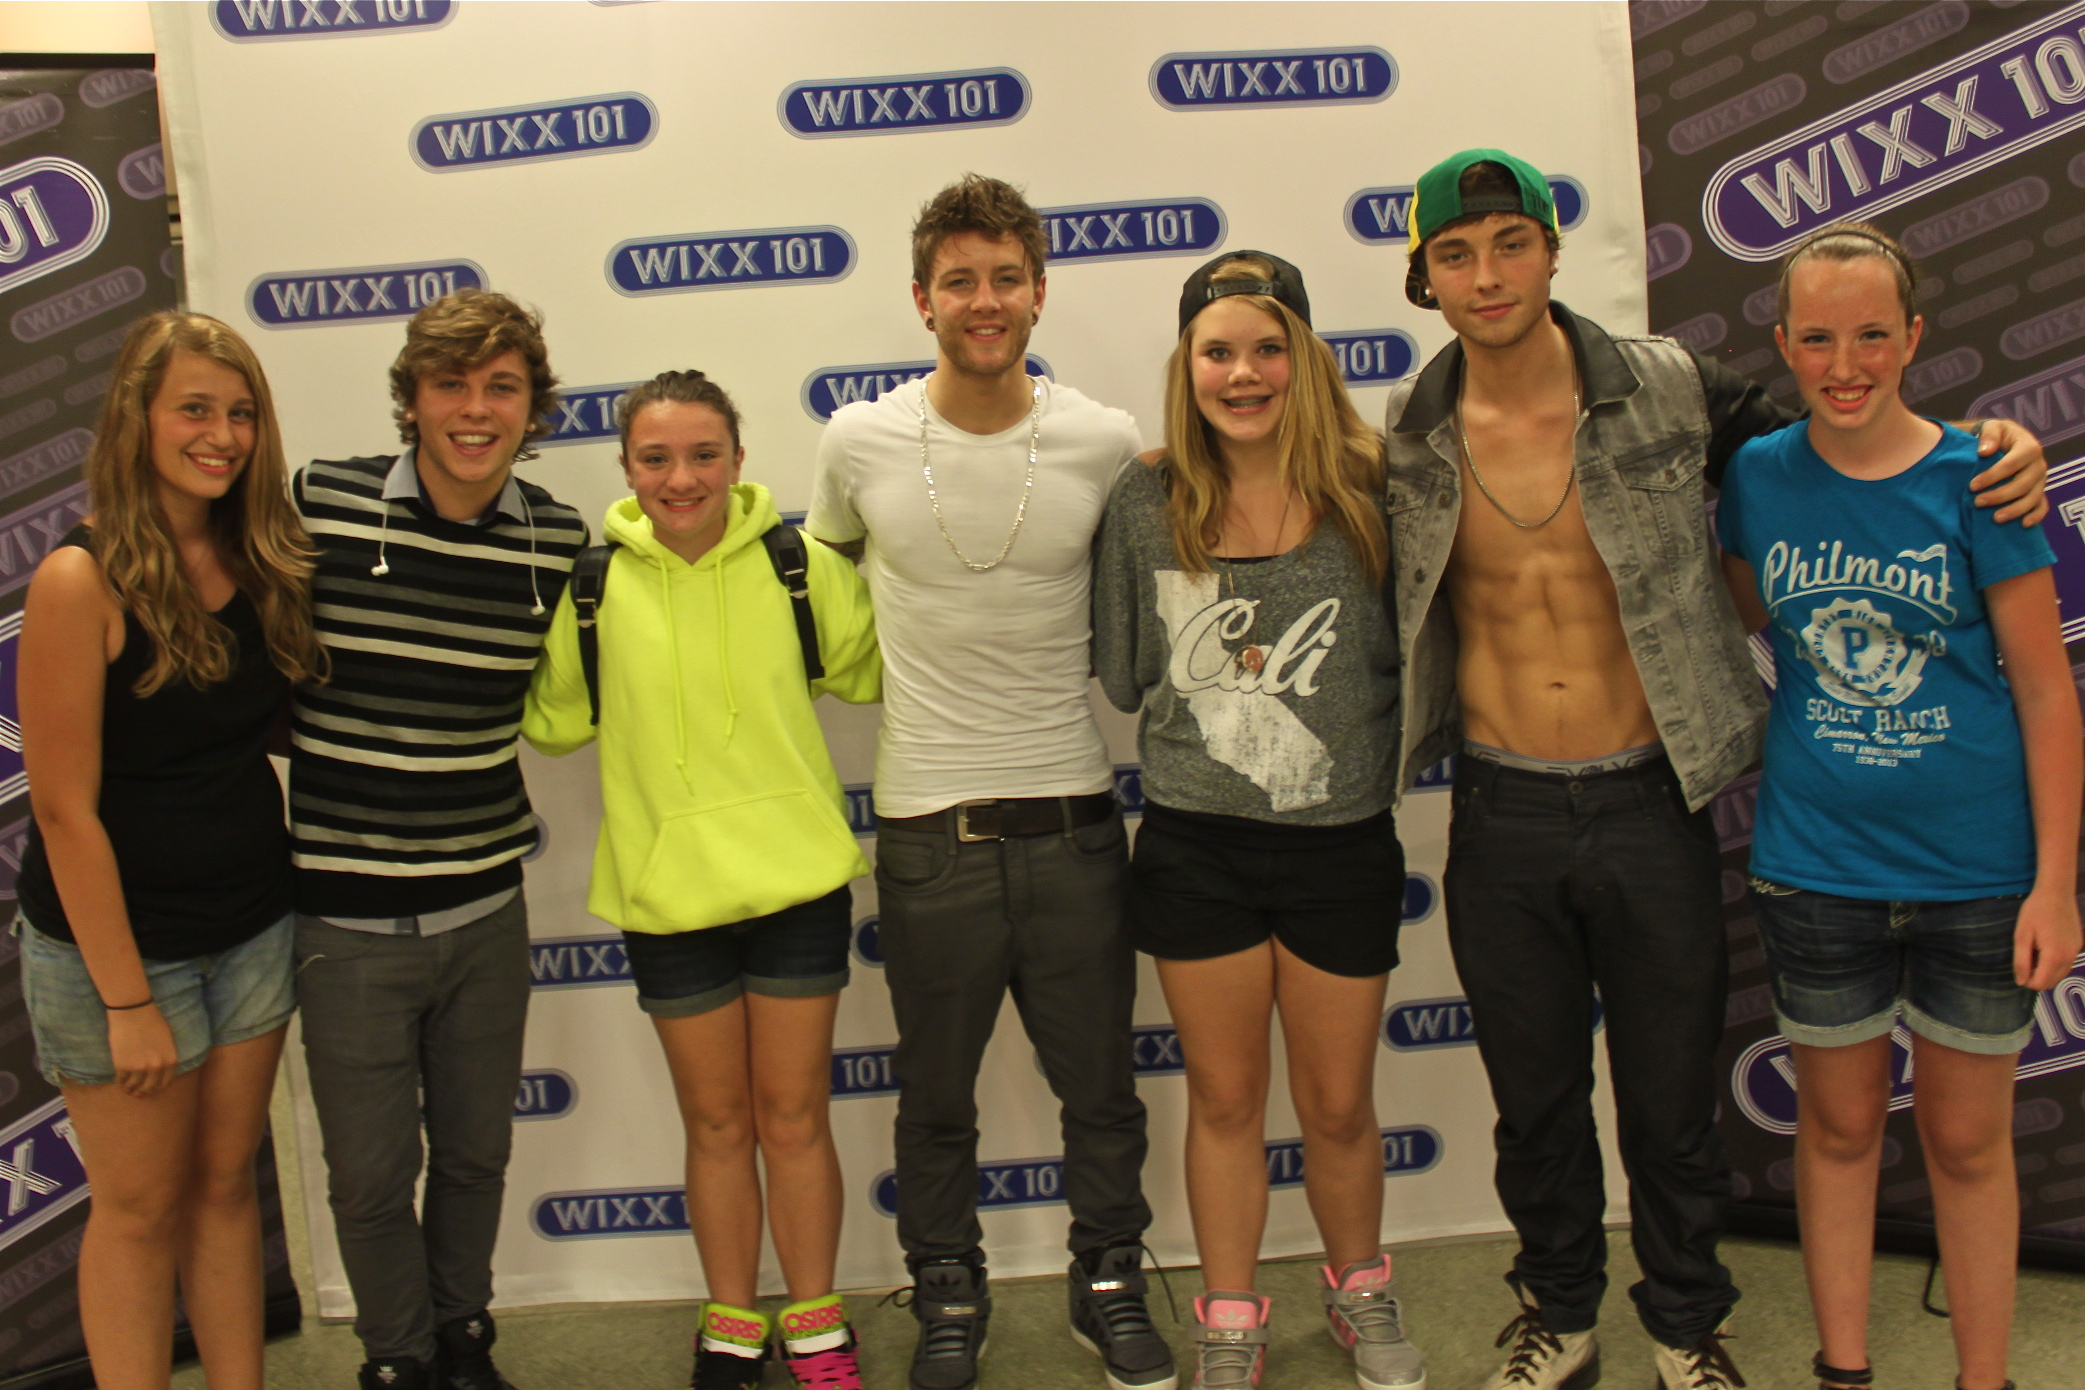 Photo 14 of 23 emblem3 meet and greet wixx back to school photo 14 of 23 emblem3 meet and greet wixx back to school concert 101 wixx m4hsunfo